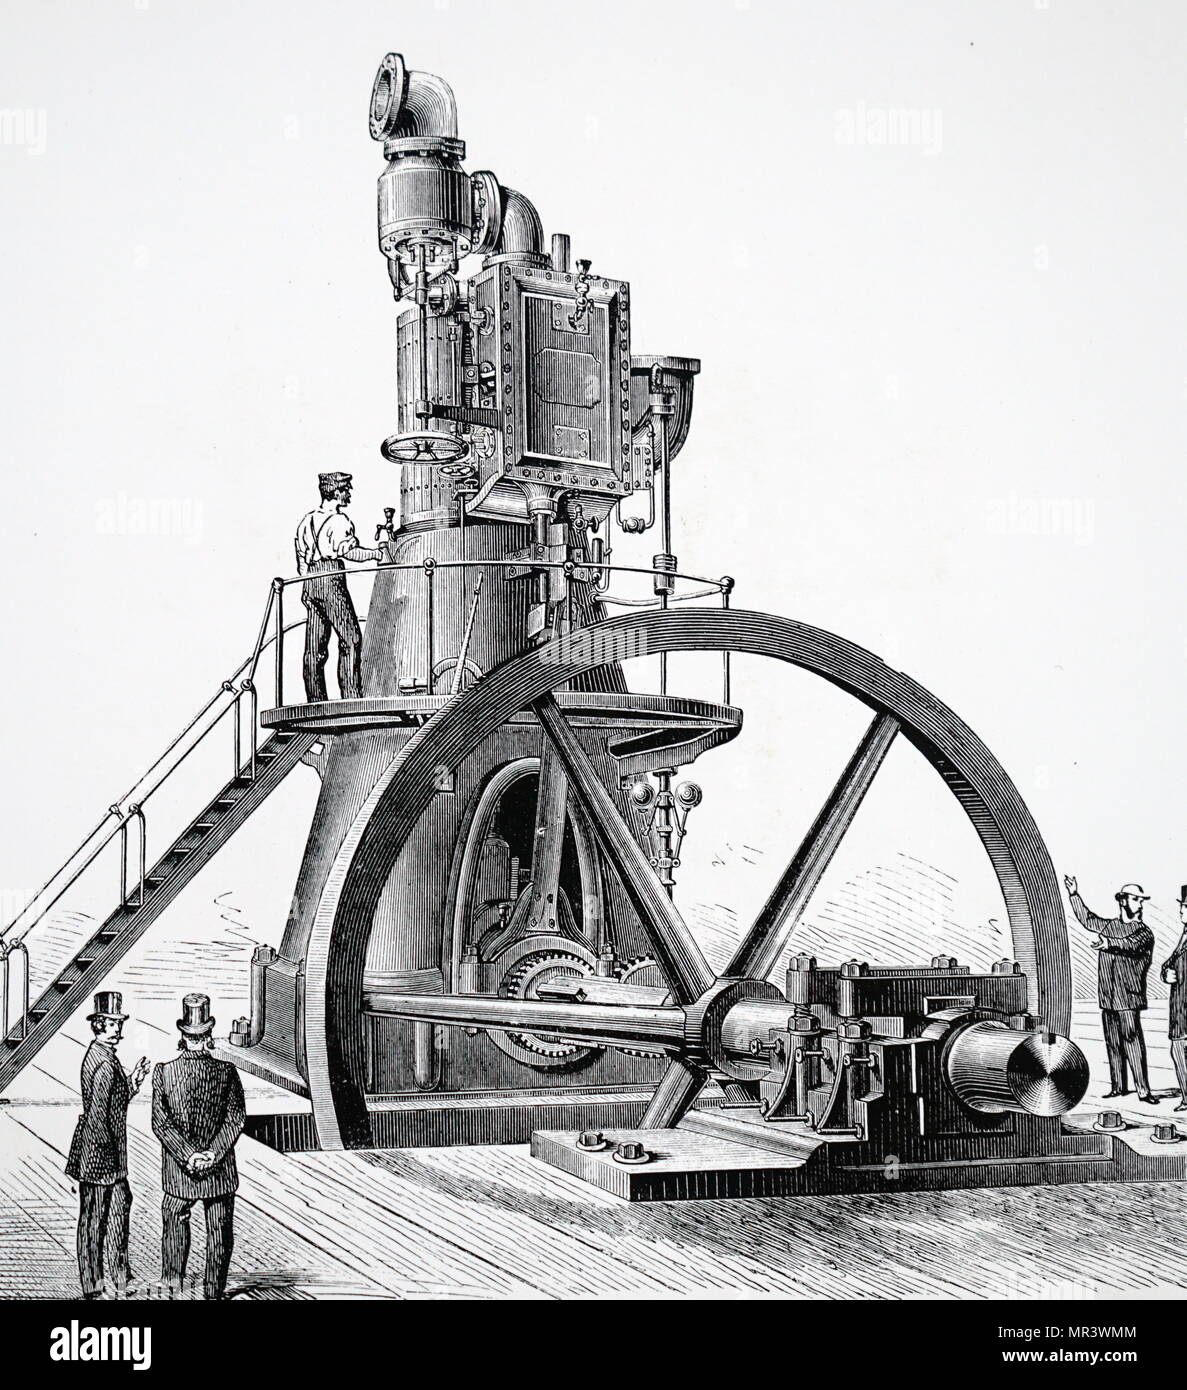 Illustration depicting a direct action vertical steam engine with flywheel shaft near floor level. Dated 19th century - Stock Image